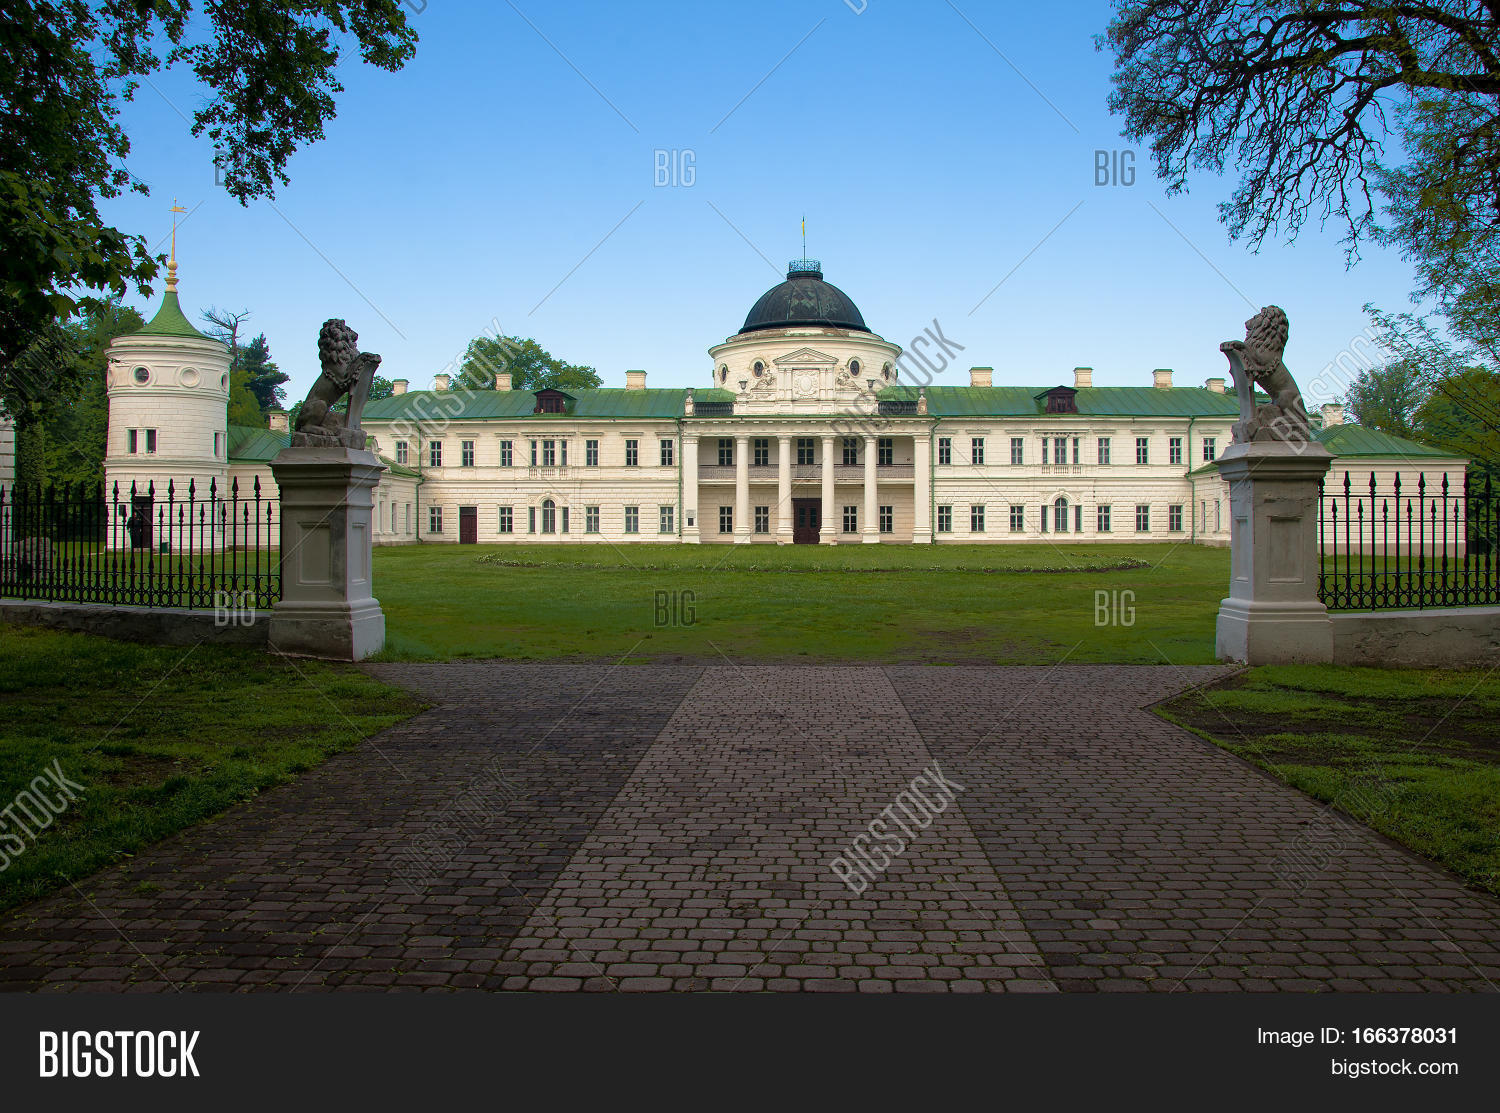 Chernigov,region,European,Kachanovka,Ukraine,Ukrainian,ancient,architecture,art,building,castle,detail,facade,famous,heritage,historic,historical,history,landmark,landscaped,monument,museum,nature,reserve,nobility,old,palace,park,part,style,summer,travel,view